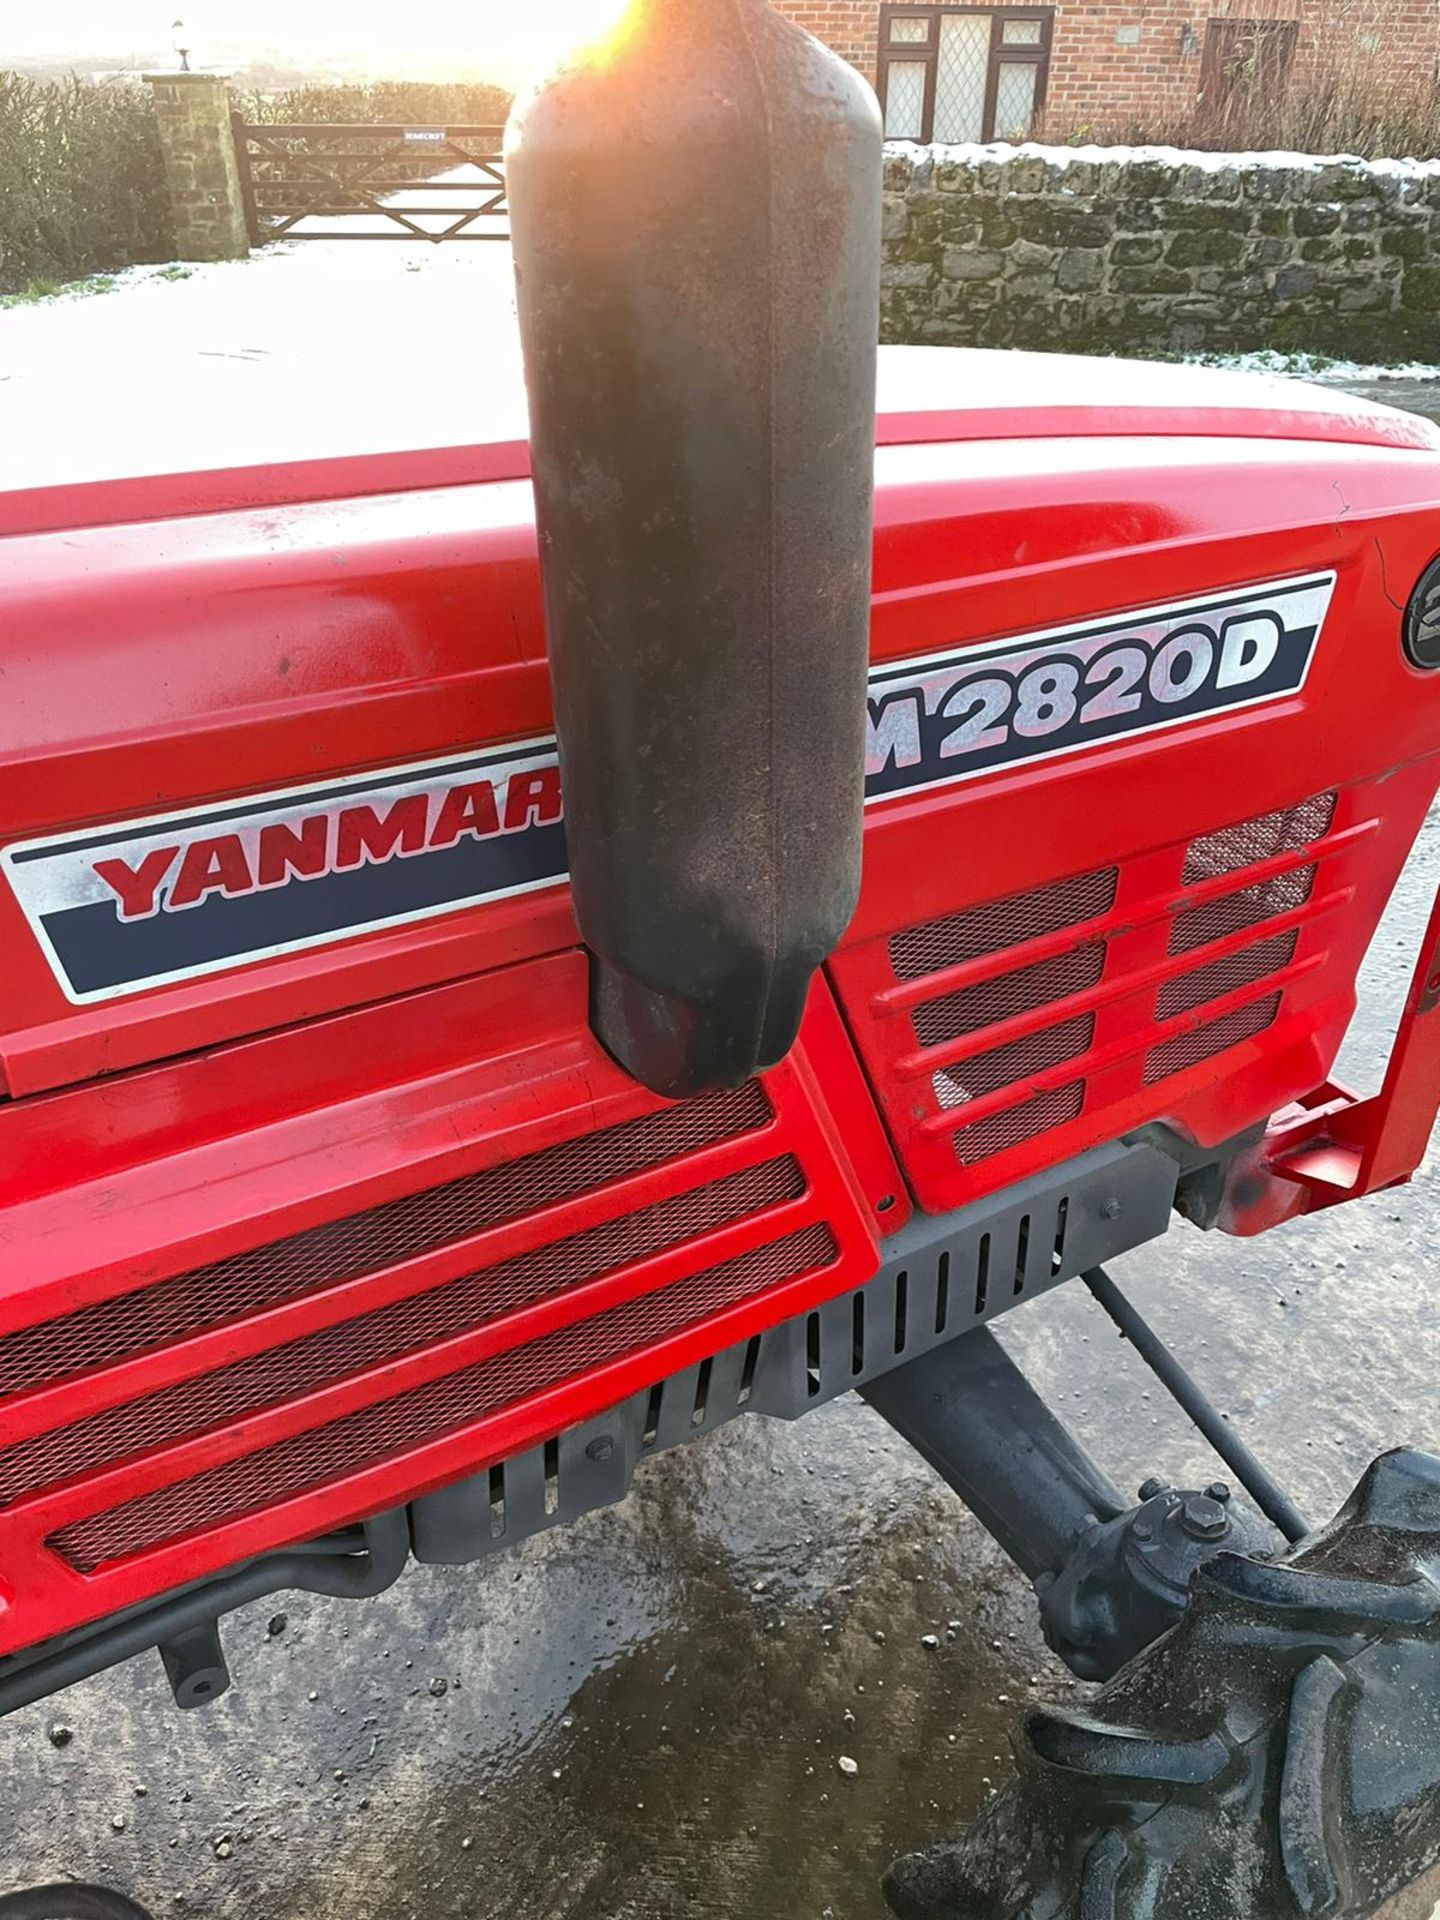 YANMAR YM2820D TRACTOR, 4 WHEEL DRIVE, WITH ROTATOR, RUNS AND WORKS, 3 POINT LINKAGE *PLUS VAT* - Image 8 of 8